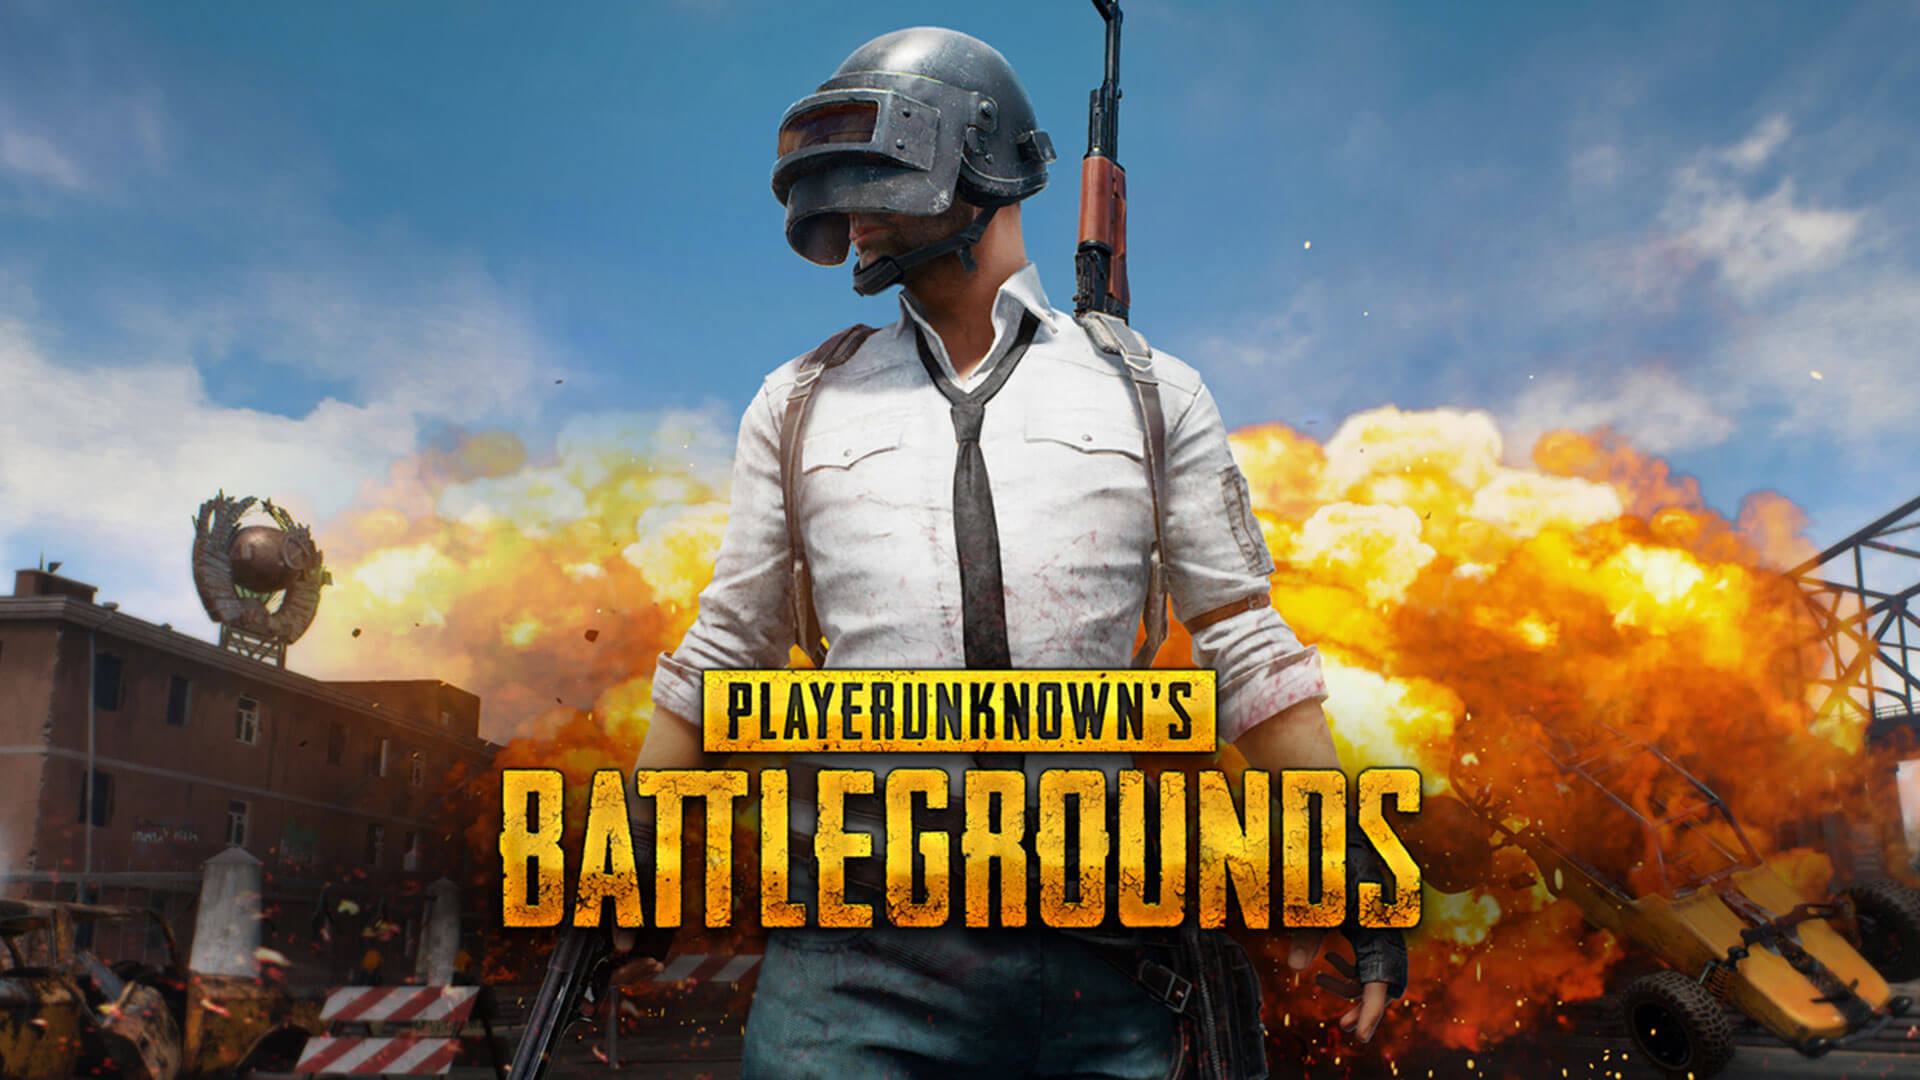 Has The End Come For Single Player Game Thanks Pubg